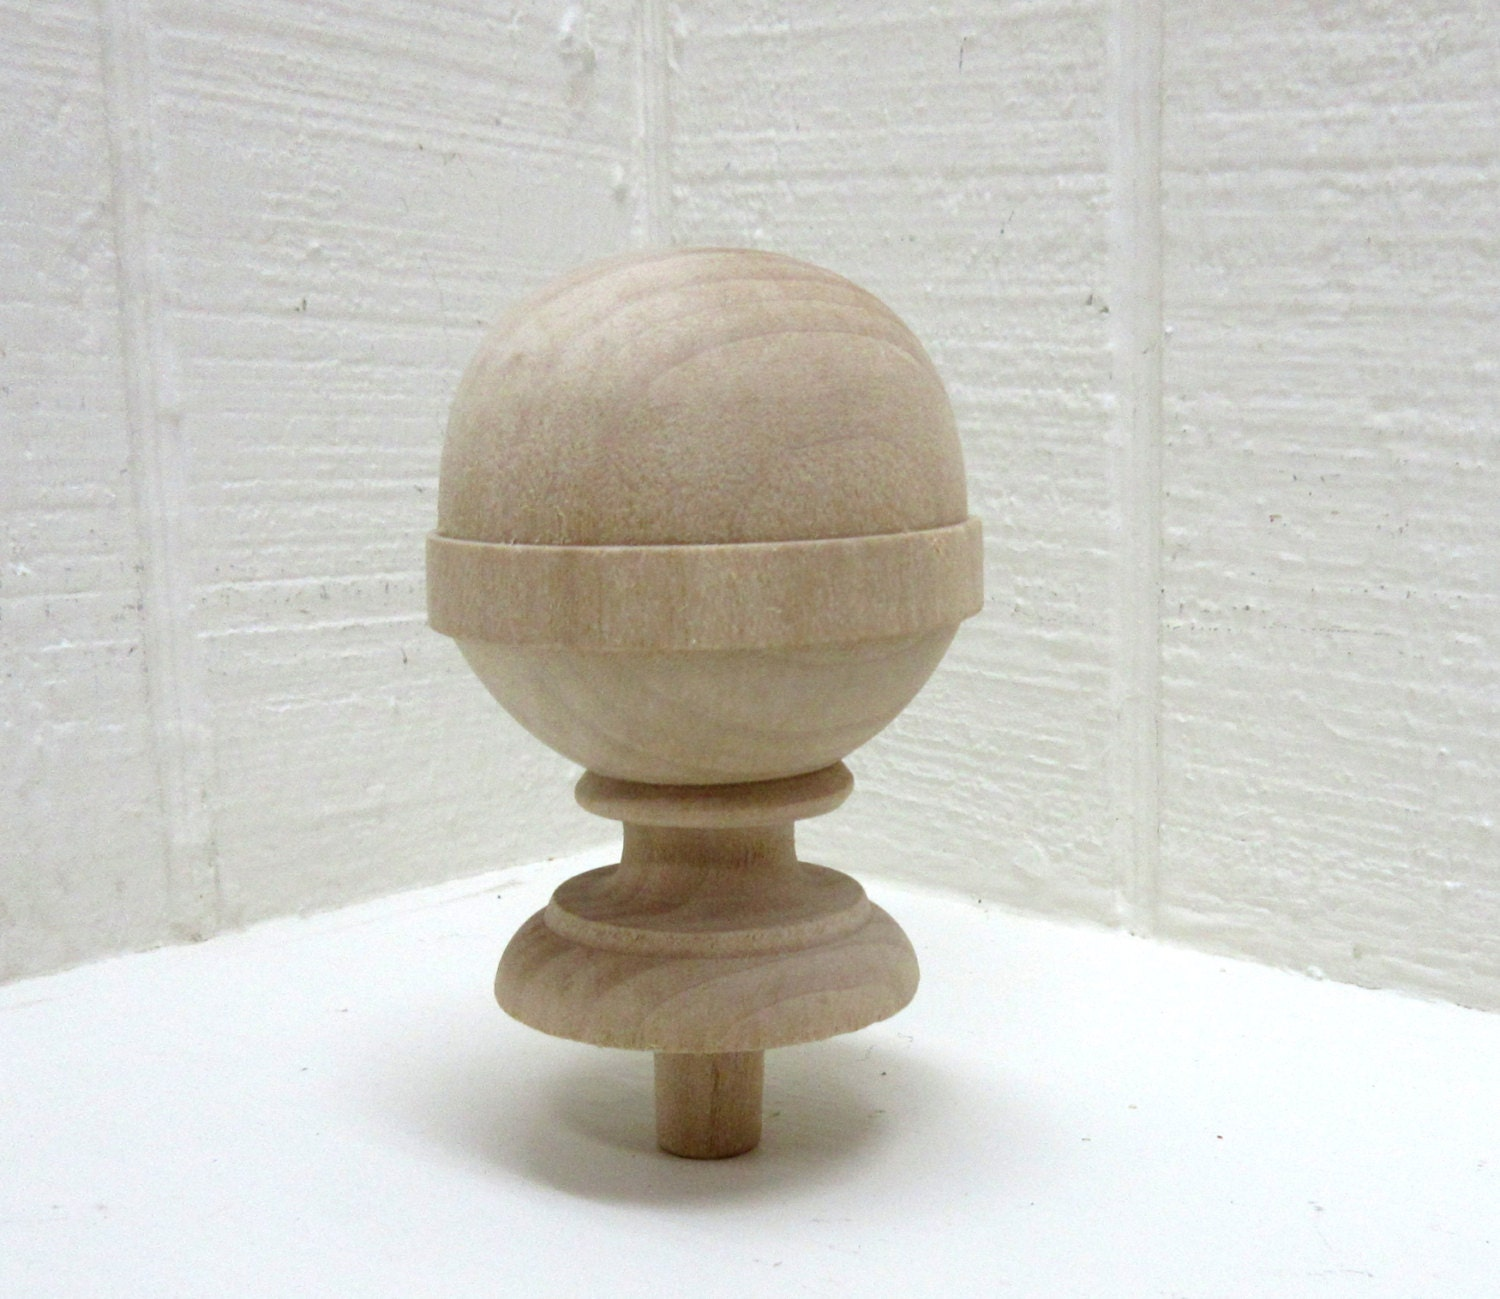 Finial Unfinished Wood Finial With Nice Profile